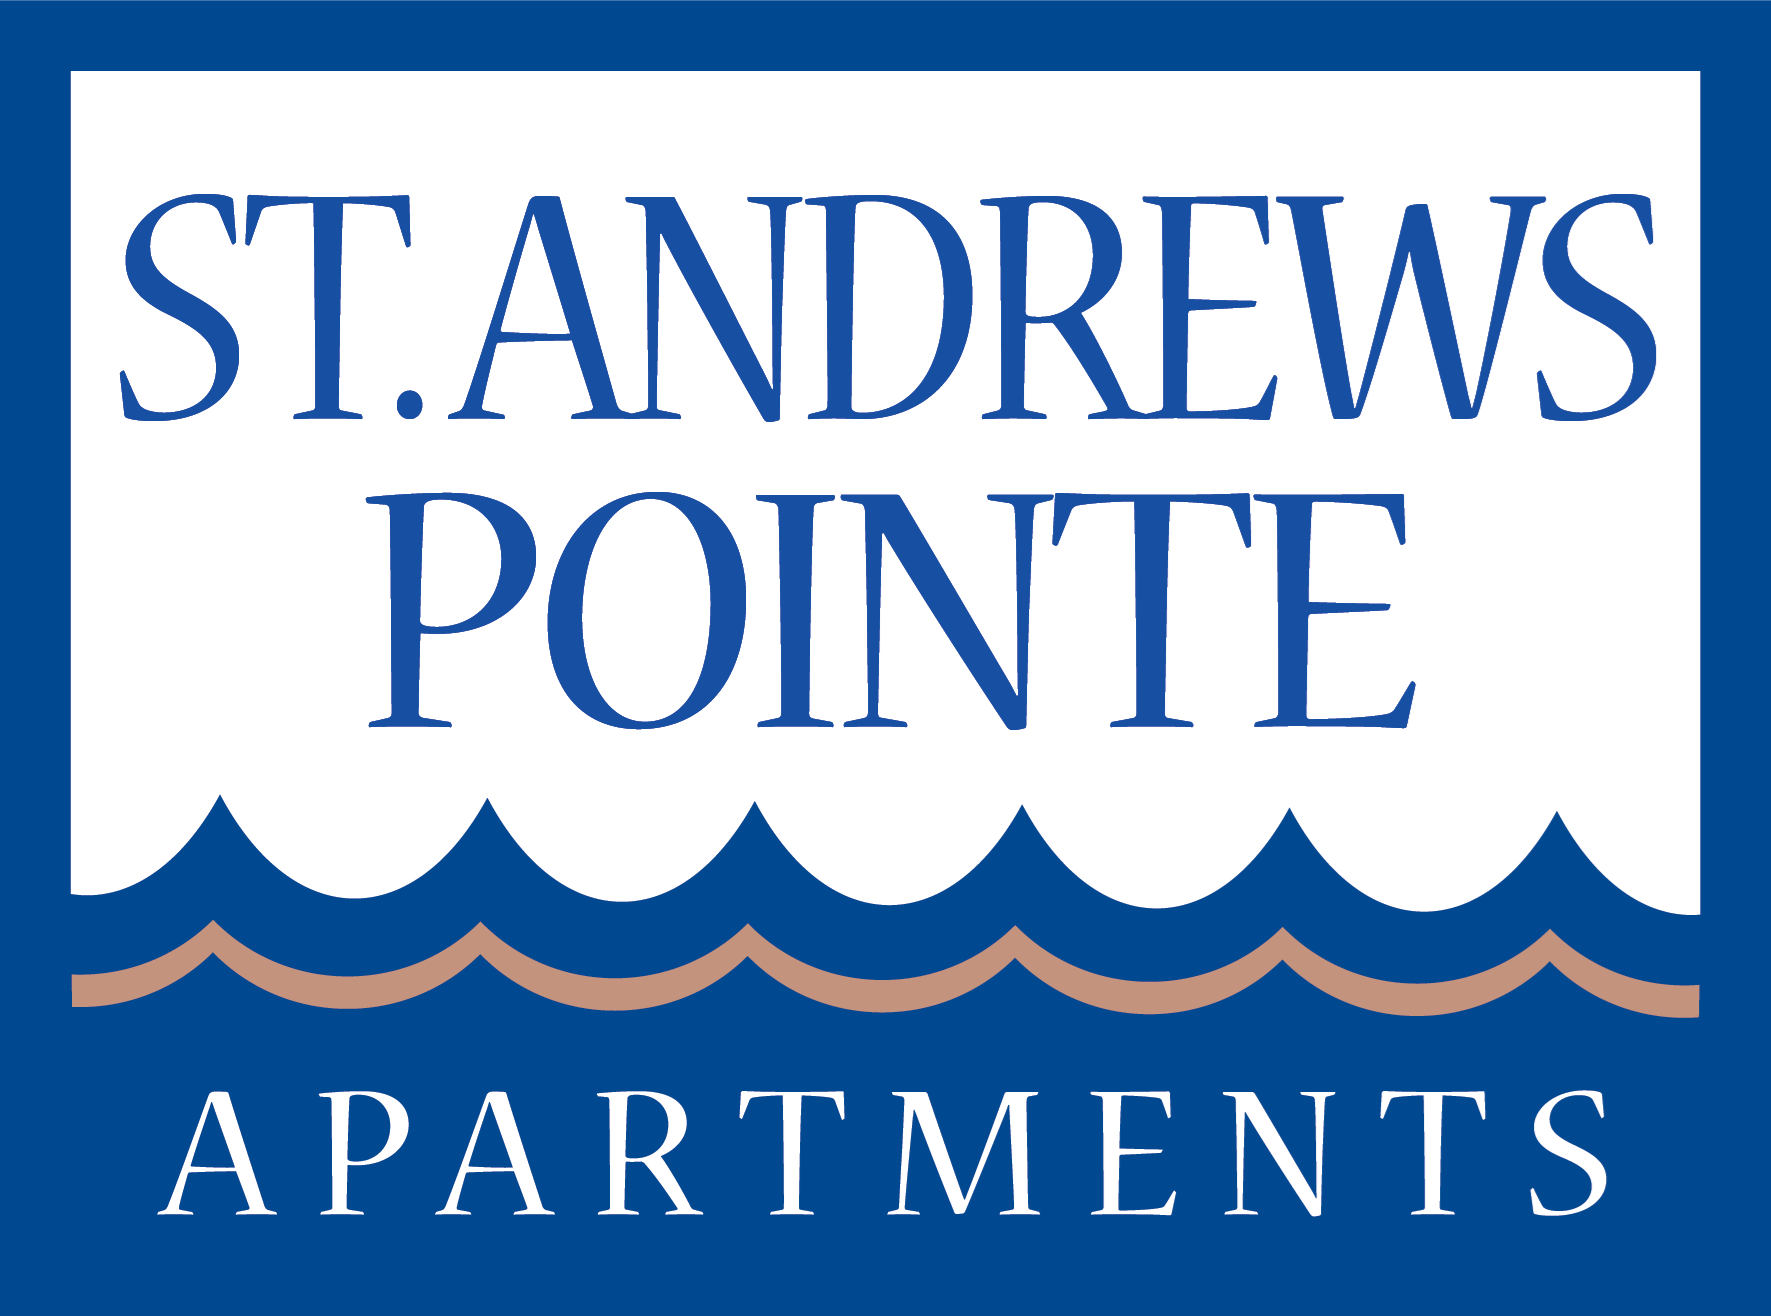 St. Andrews Pointe Apartments for rent in Port St. Lucie, FL. Make this community your new home or visit other Concord Rents communities at ConcordRents.com. Logo